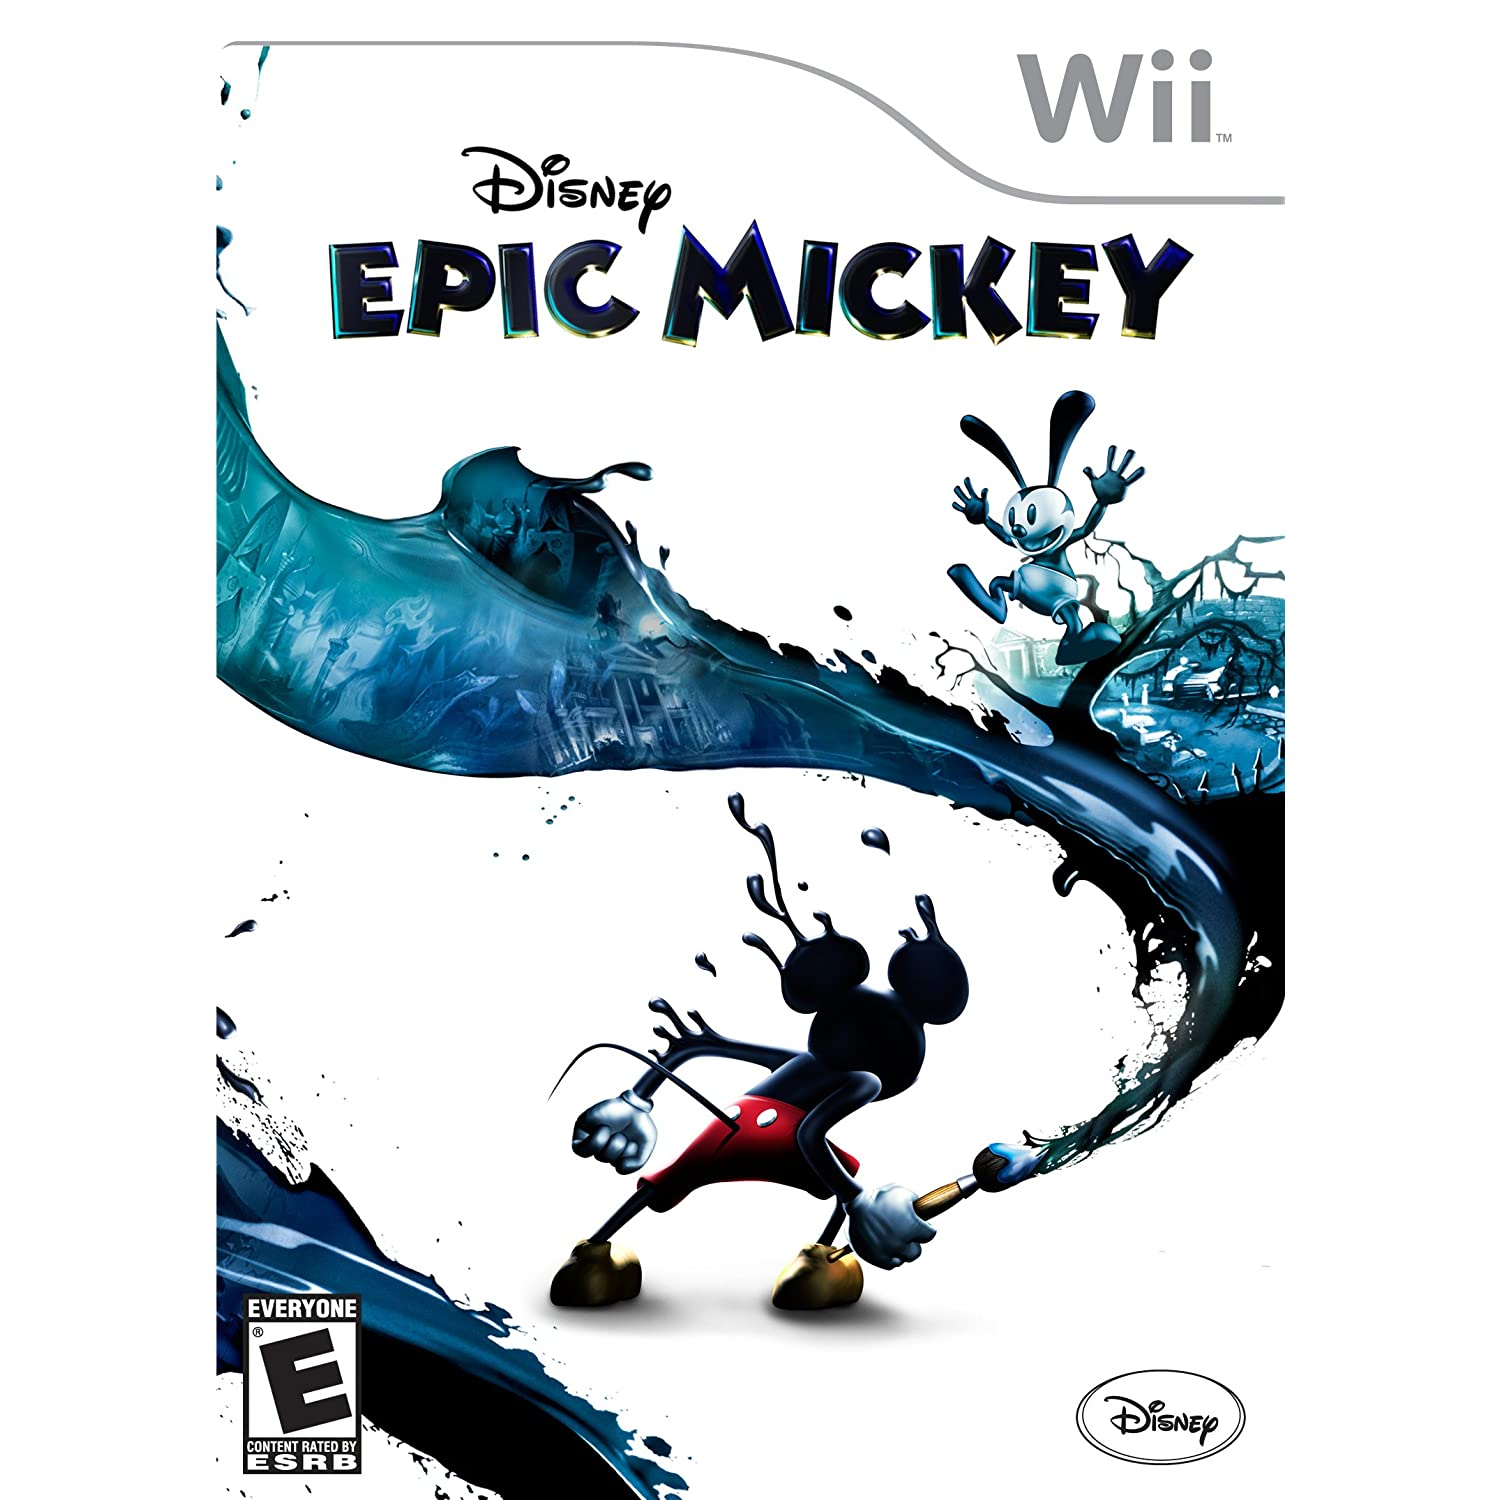 Online Game, Online Games, Video Game, Video Games, Nintendo, Wii, Action, Disney, Mickey mouse, Epic, Adventure, Disney Epic Mickey